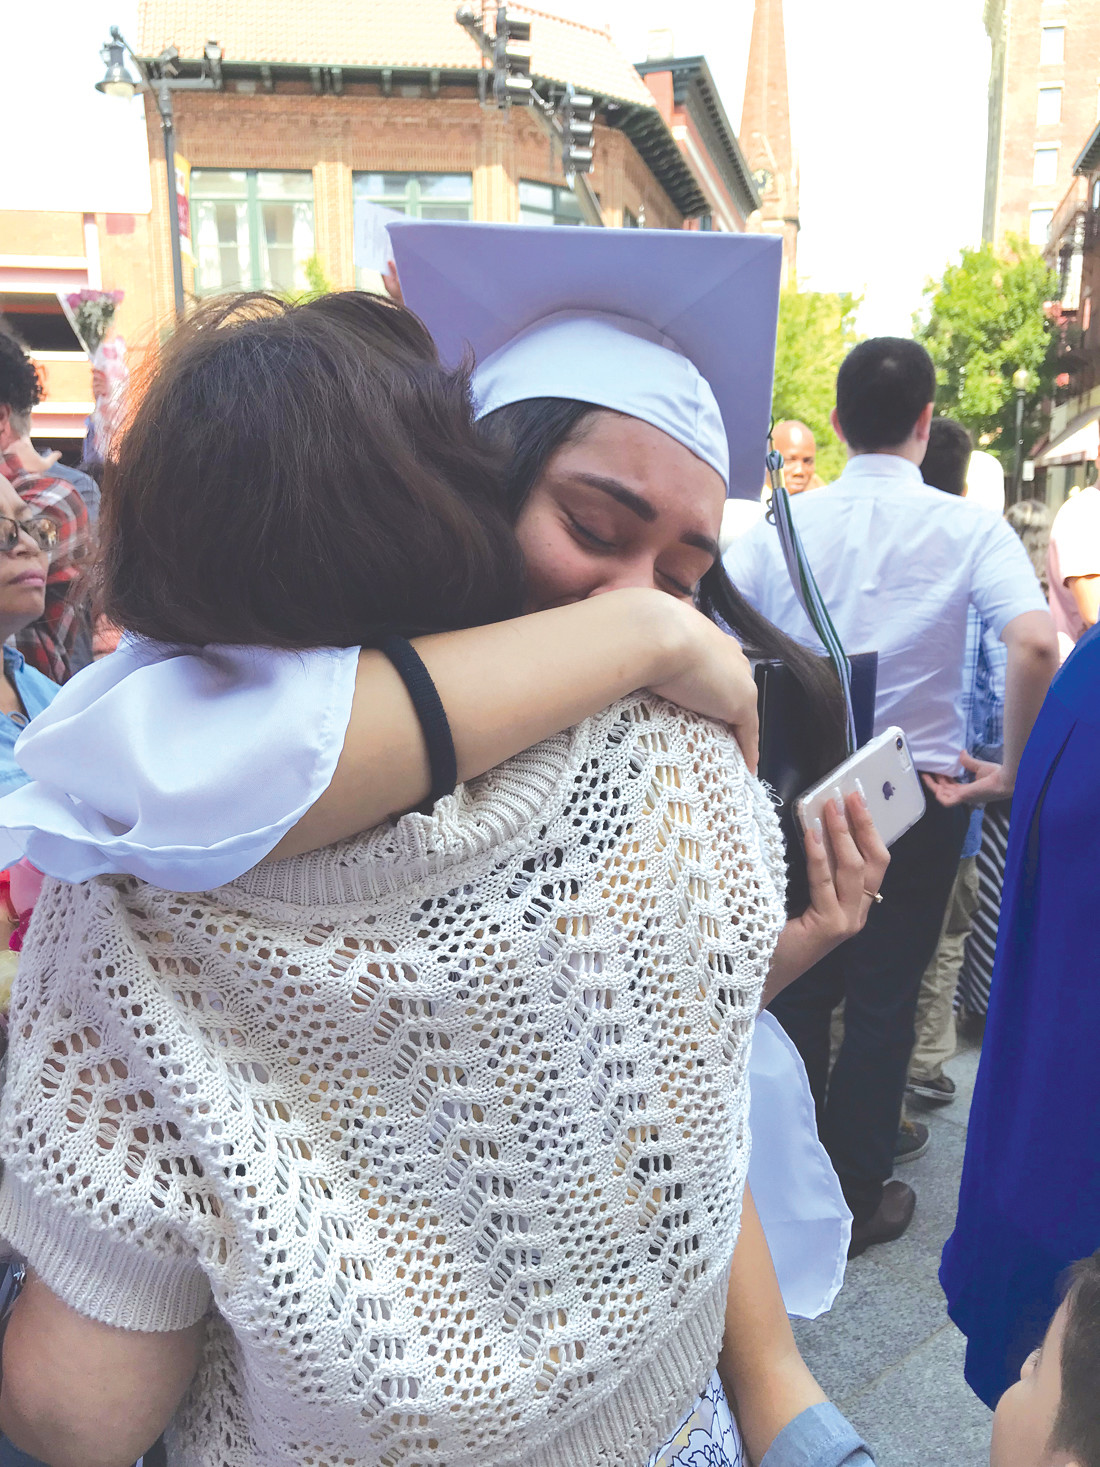 THIS IS WHAT IT IS ALL ABOUT: A recent graduate gives her grandmother a teary hug.